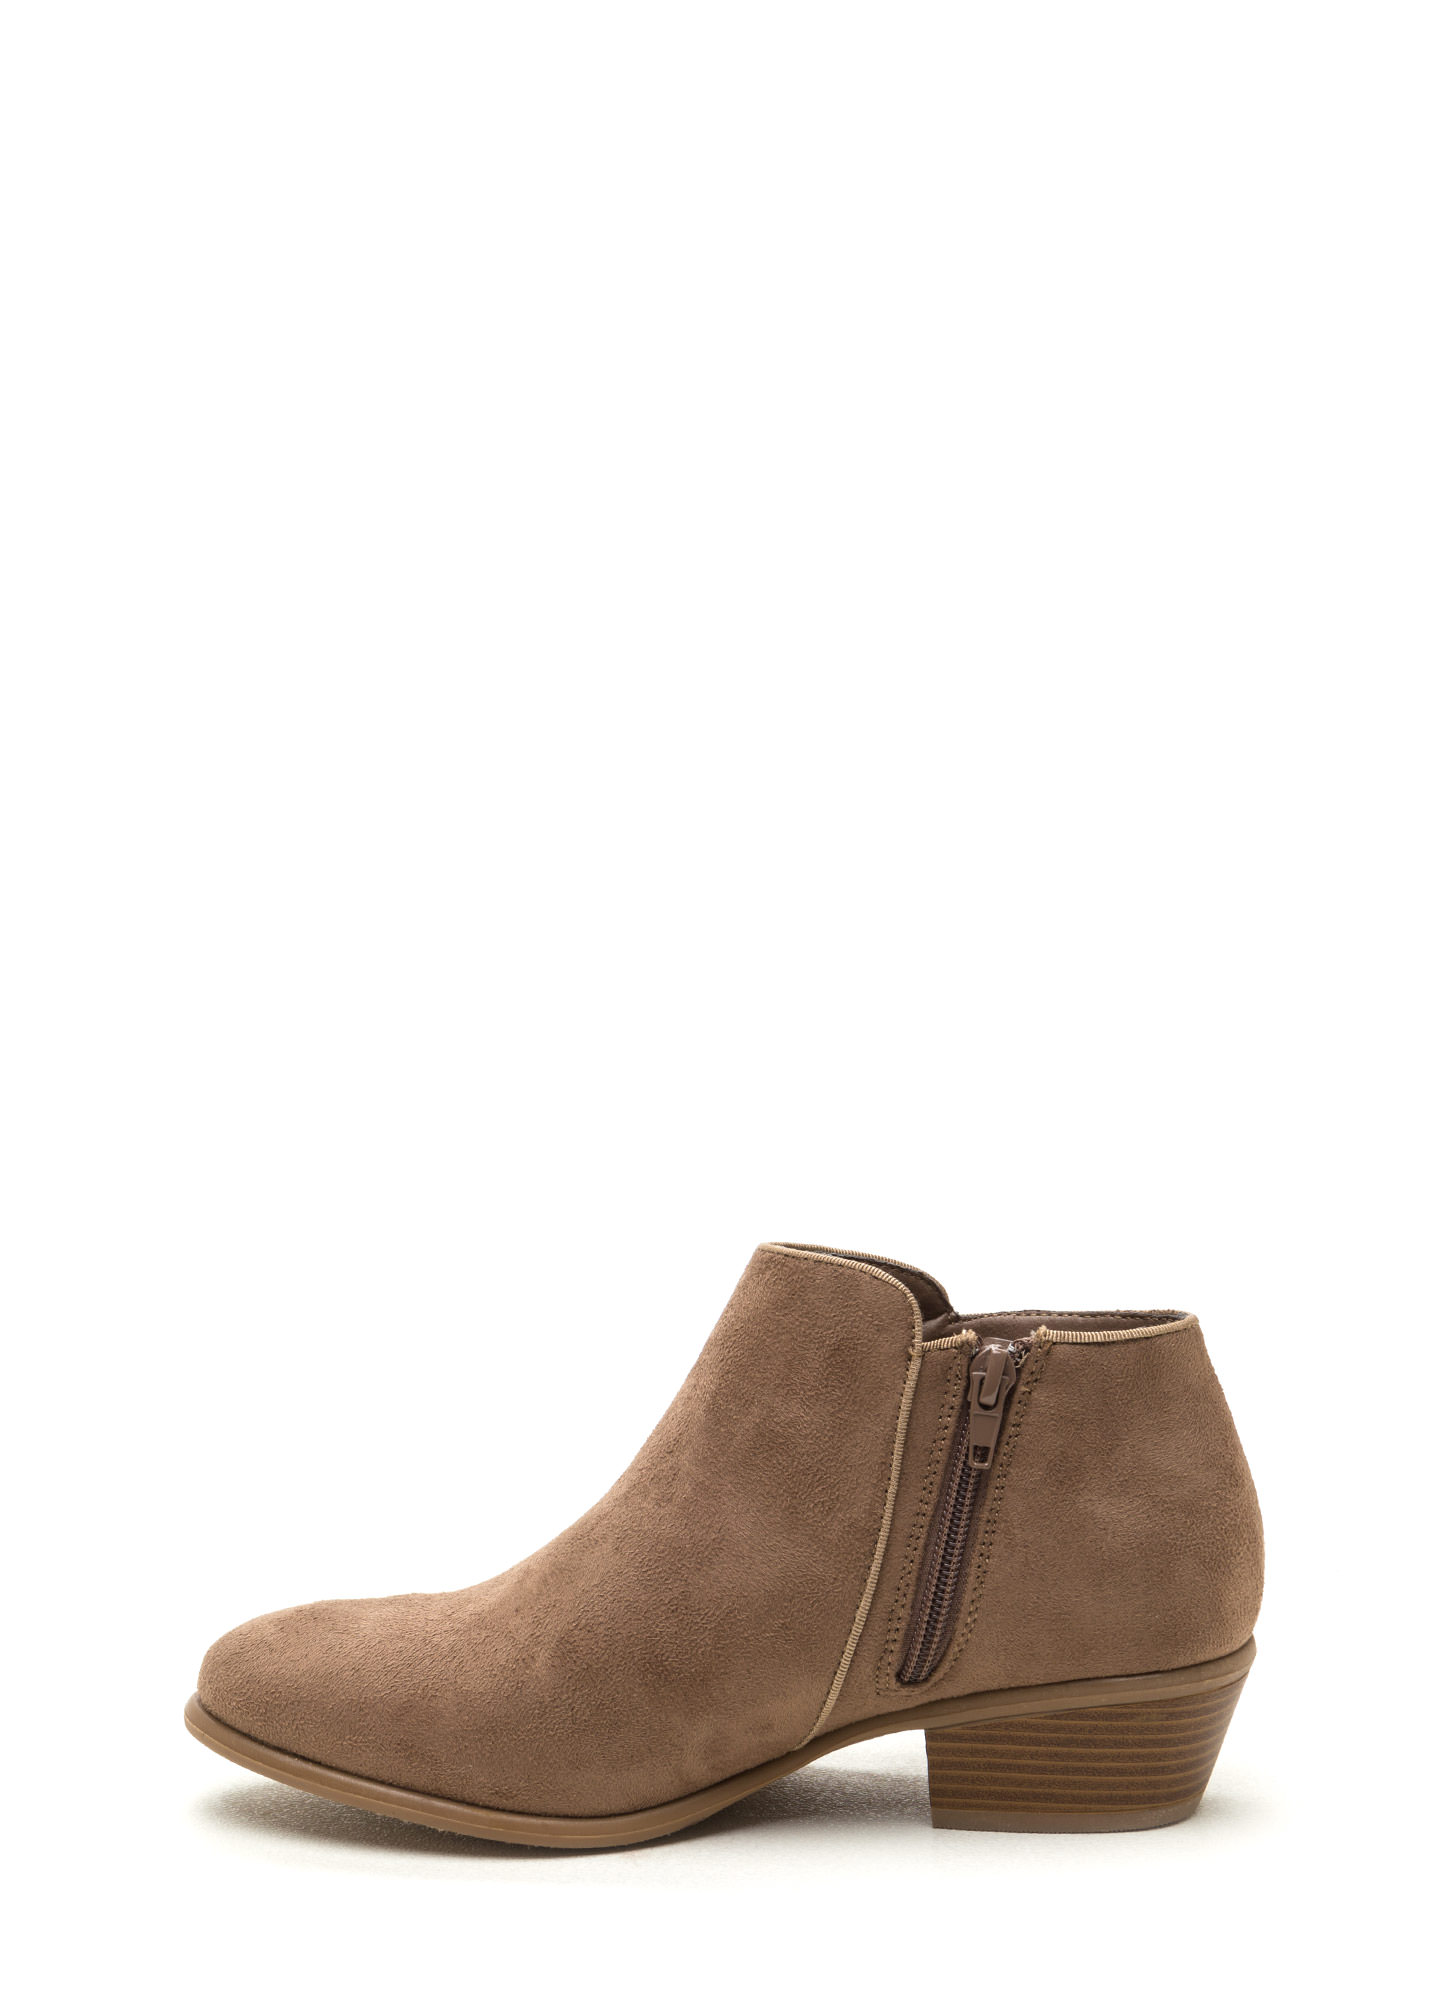 Fringe Fandom Faux Suede Booties TAUPE